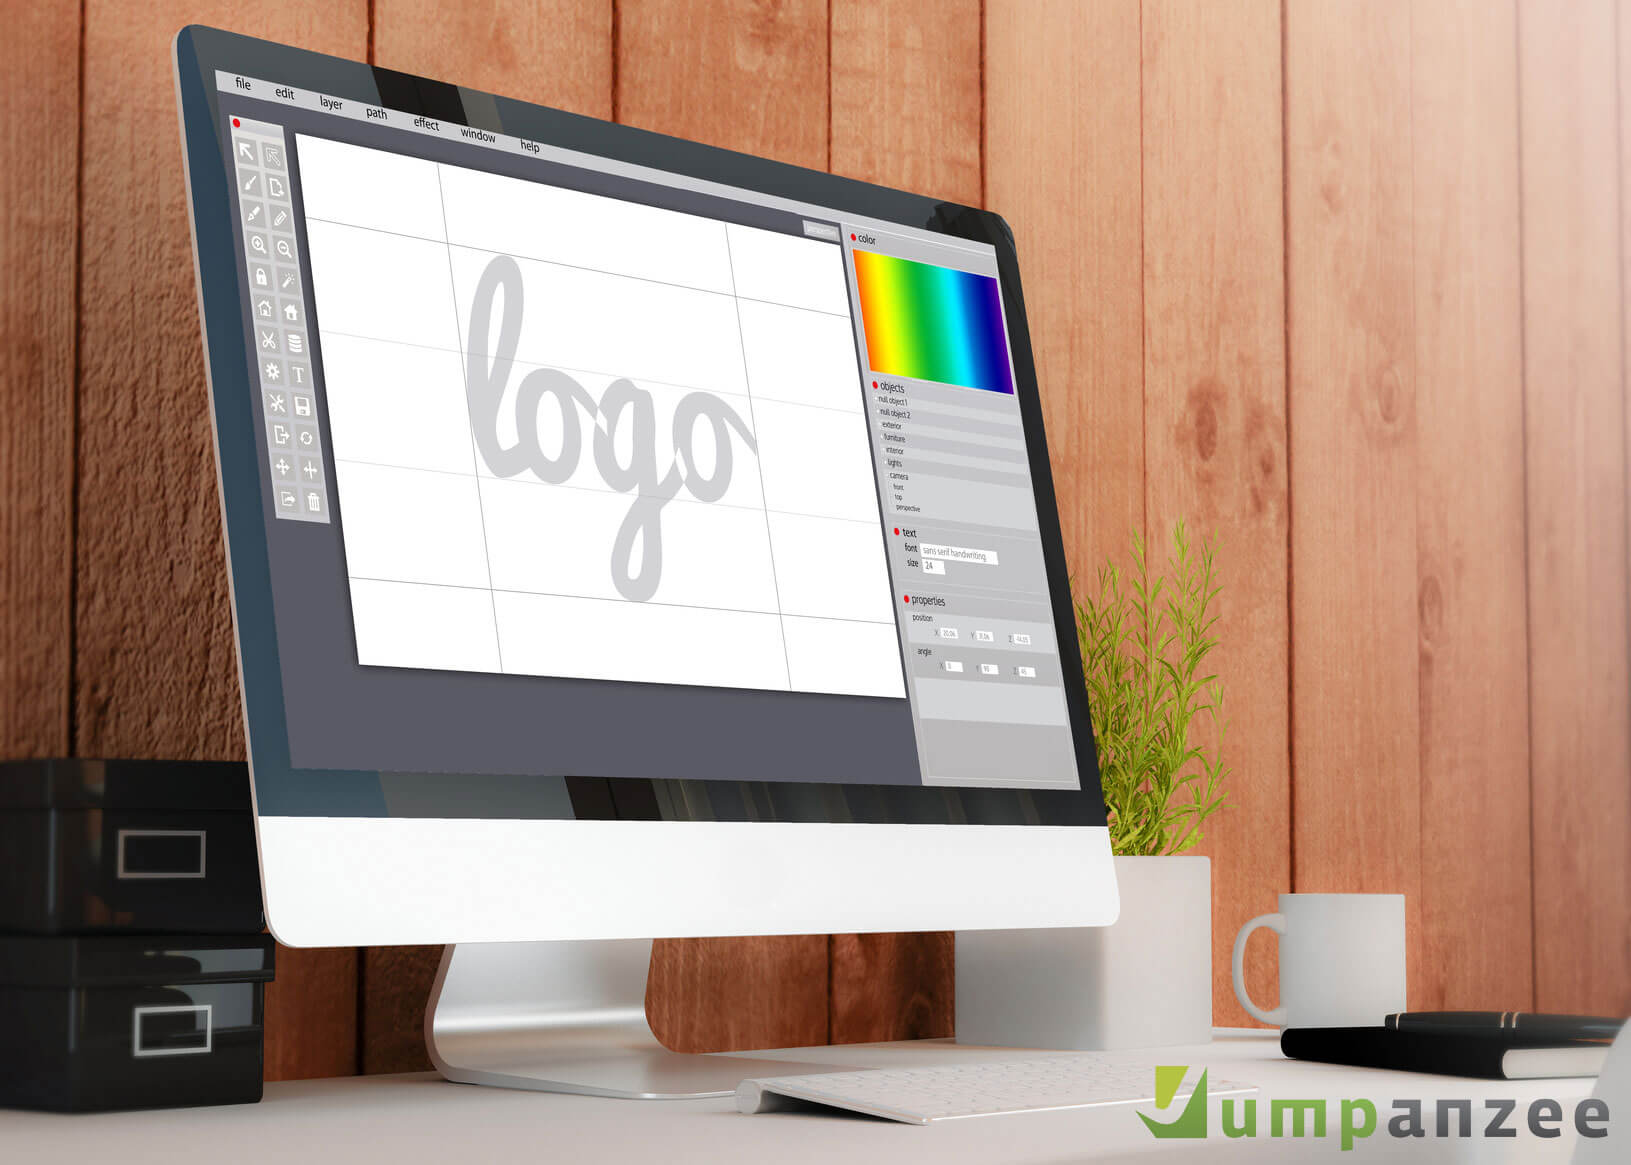 Jumpanzee Logo Refresher Test for Businesses 2